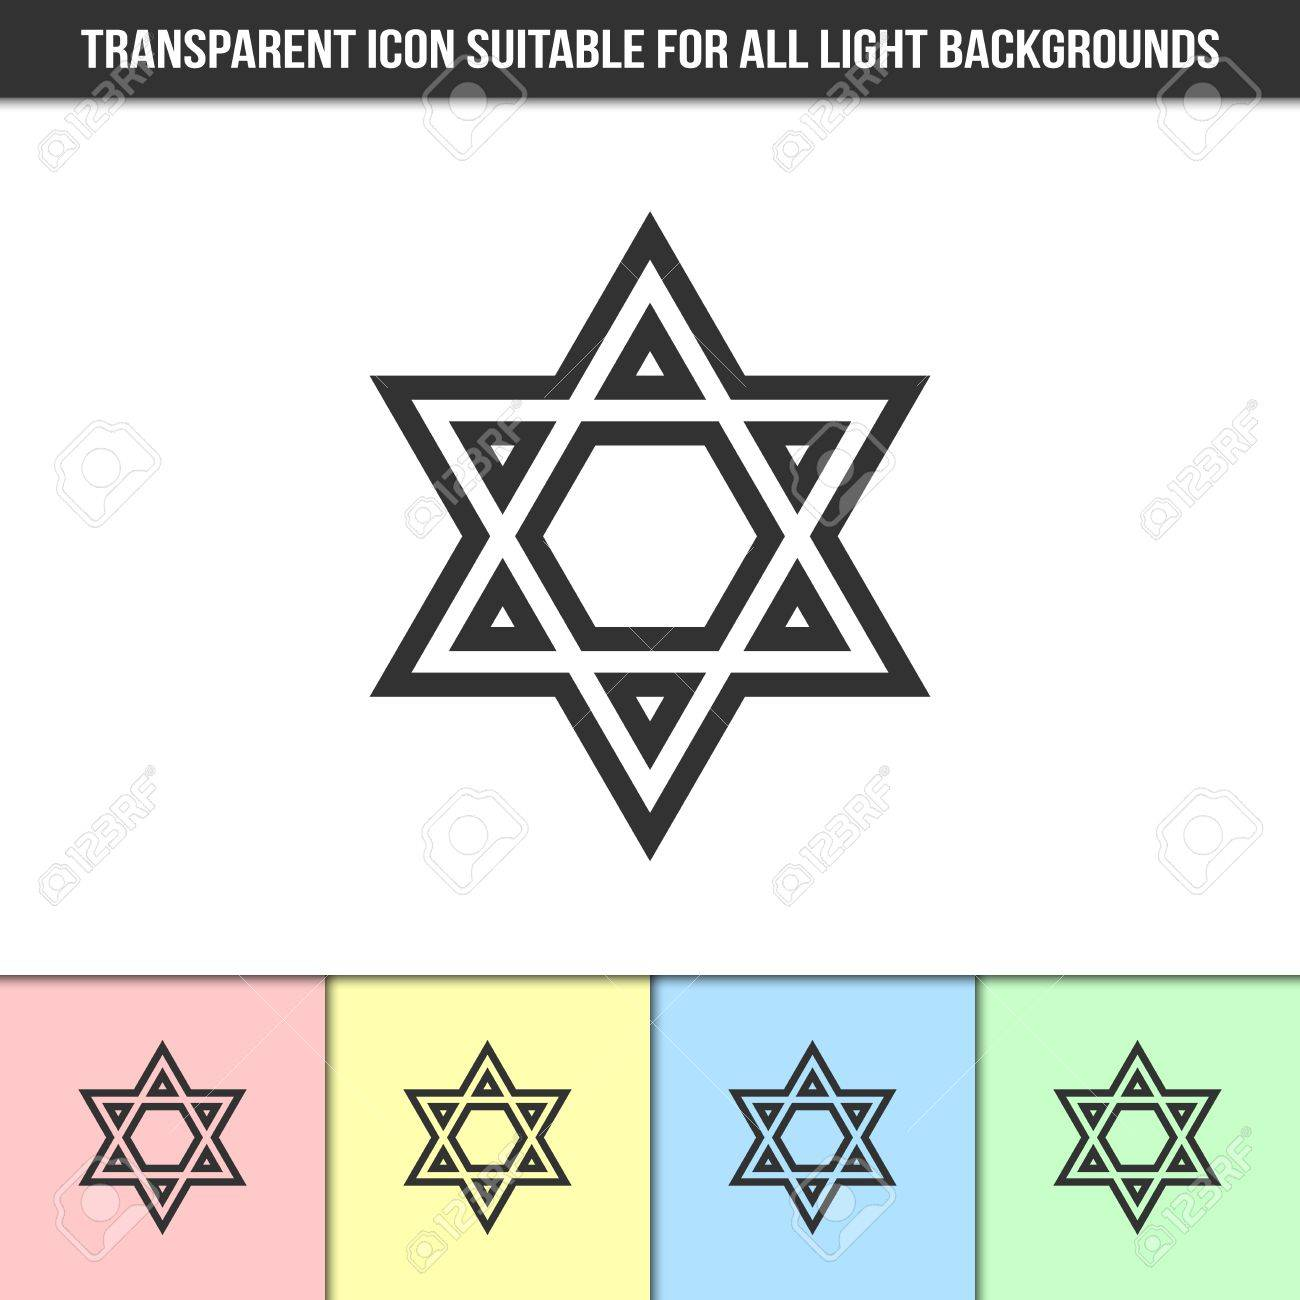 Simple outline transparent israeli star of david icon on different simple outline transparent israeli star of david icon on different types of light backgrounds stock vector biocorpaavc Choice Image